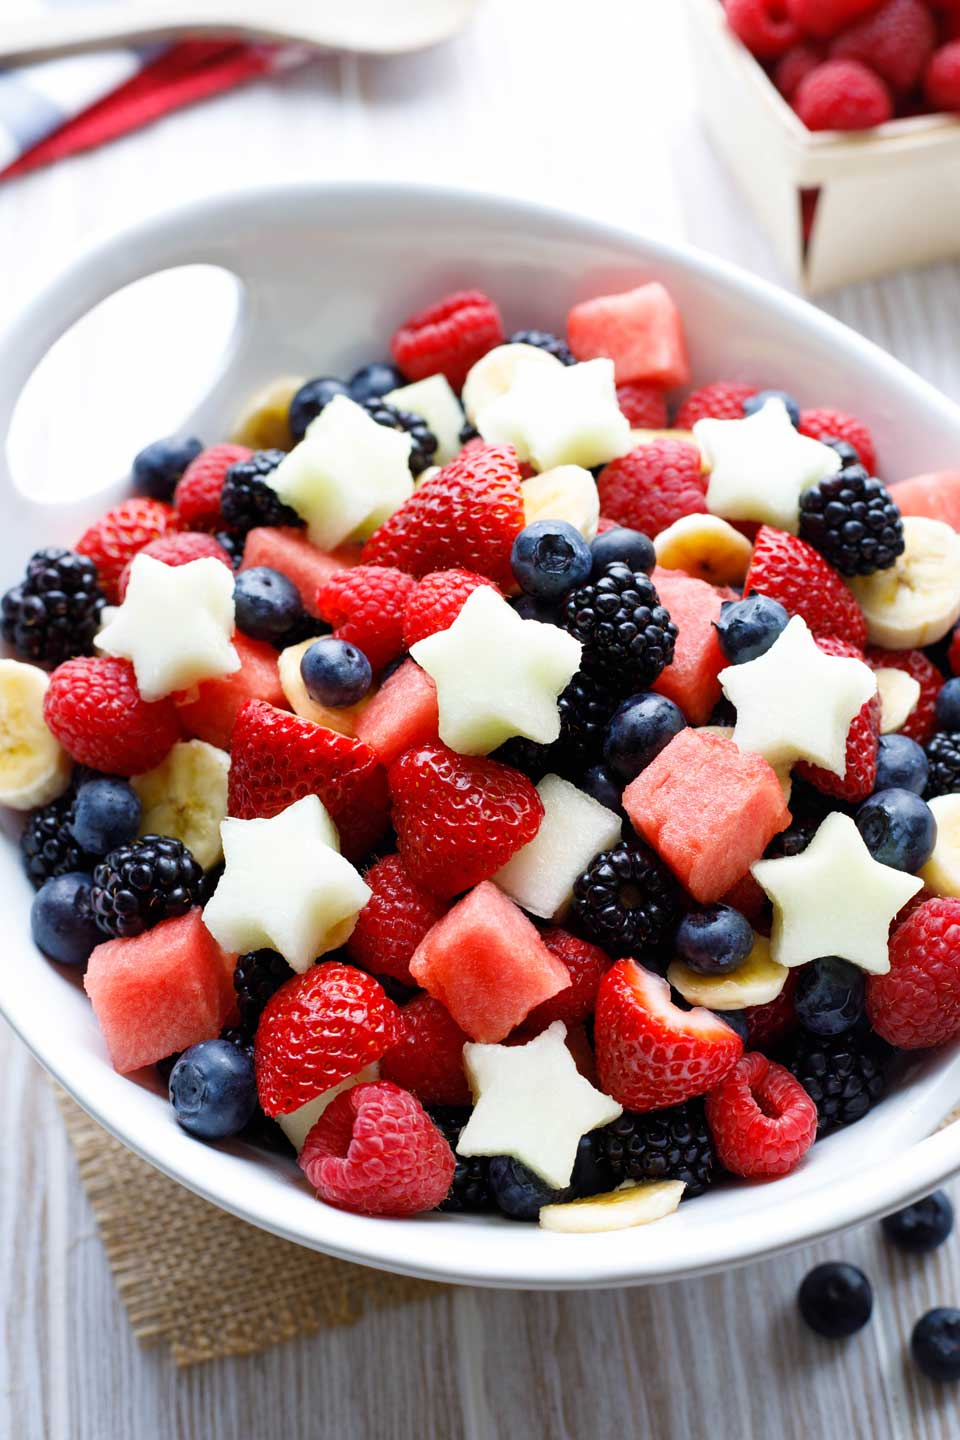 Large bowl of mixed red, white and blue fruit - decorated with little melon stars on the top